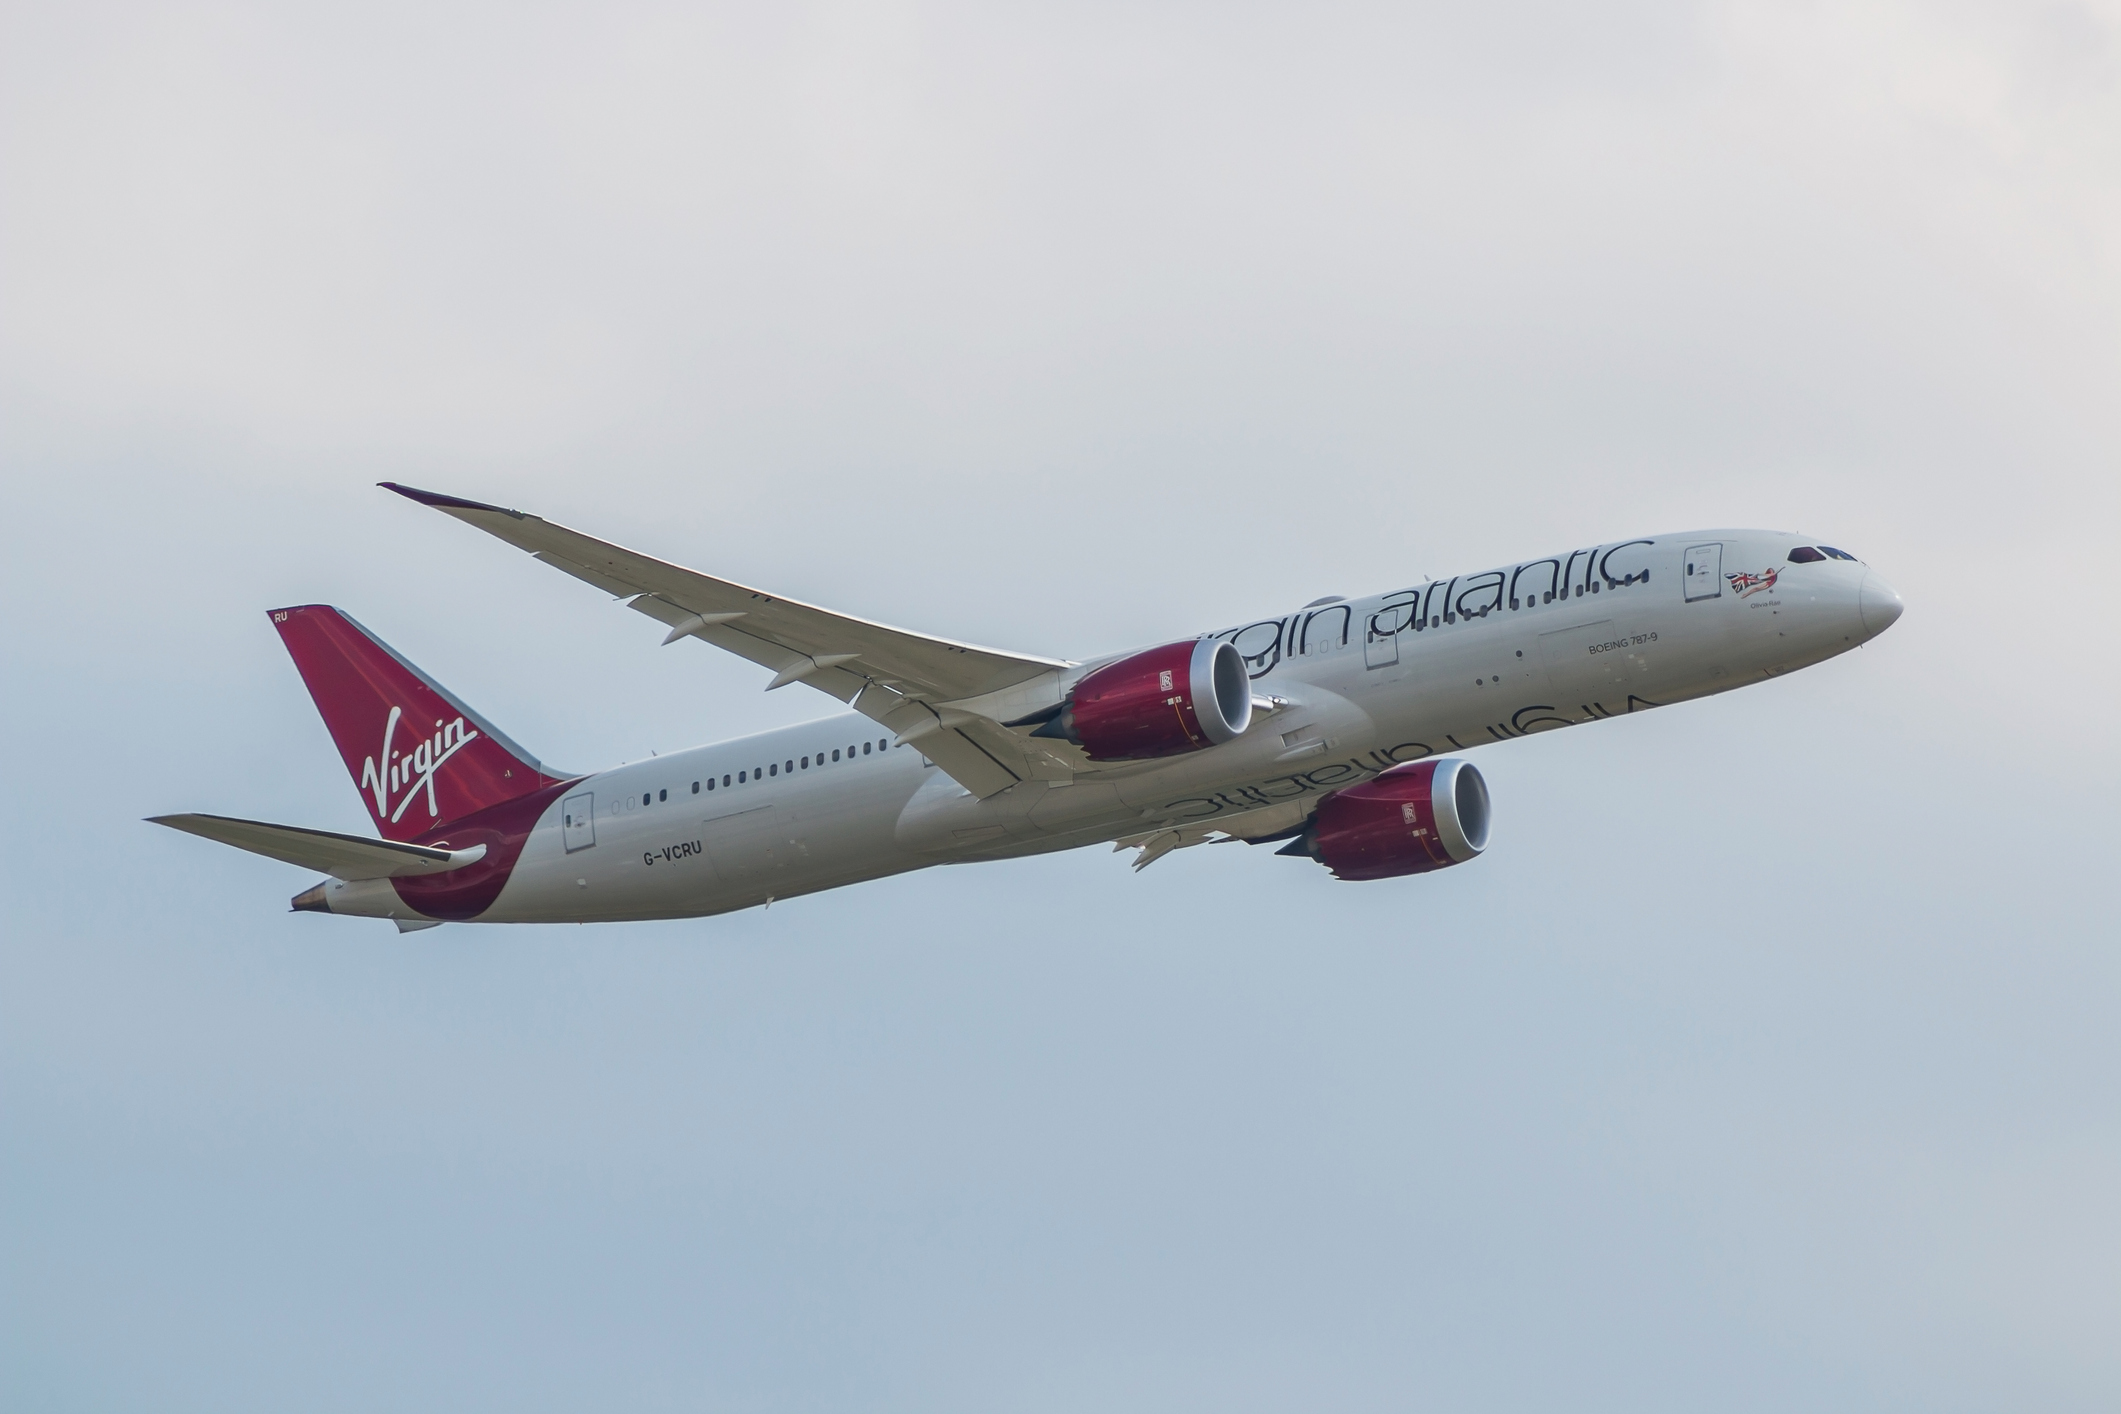 A Virgin Boeing 787 Dreamliner